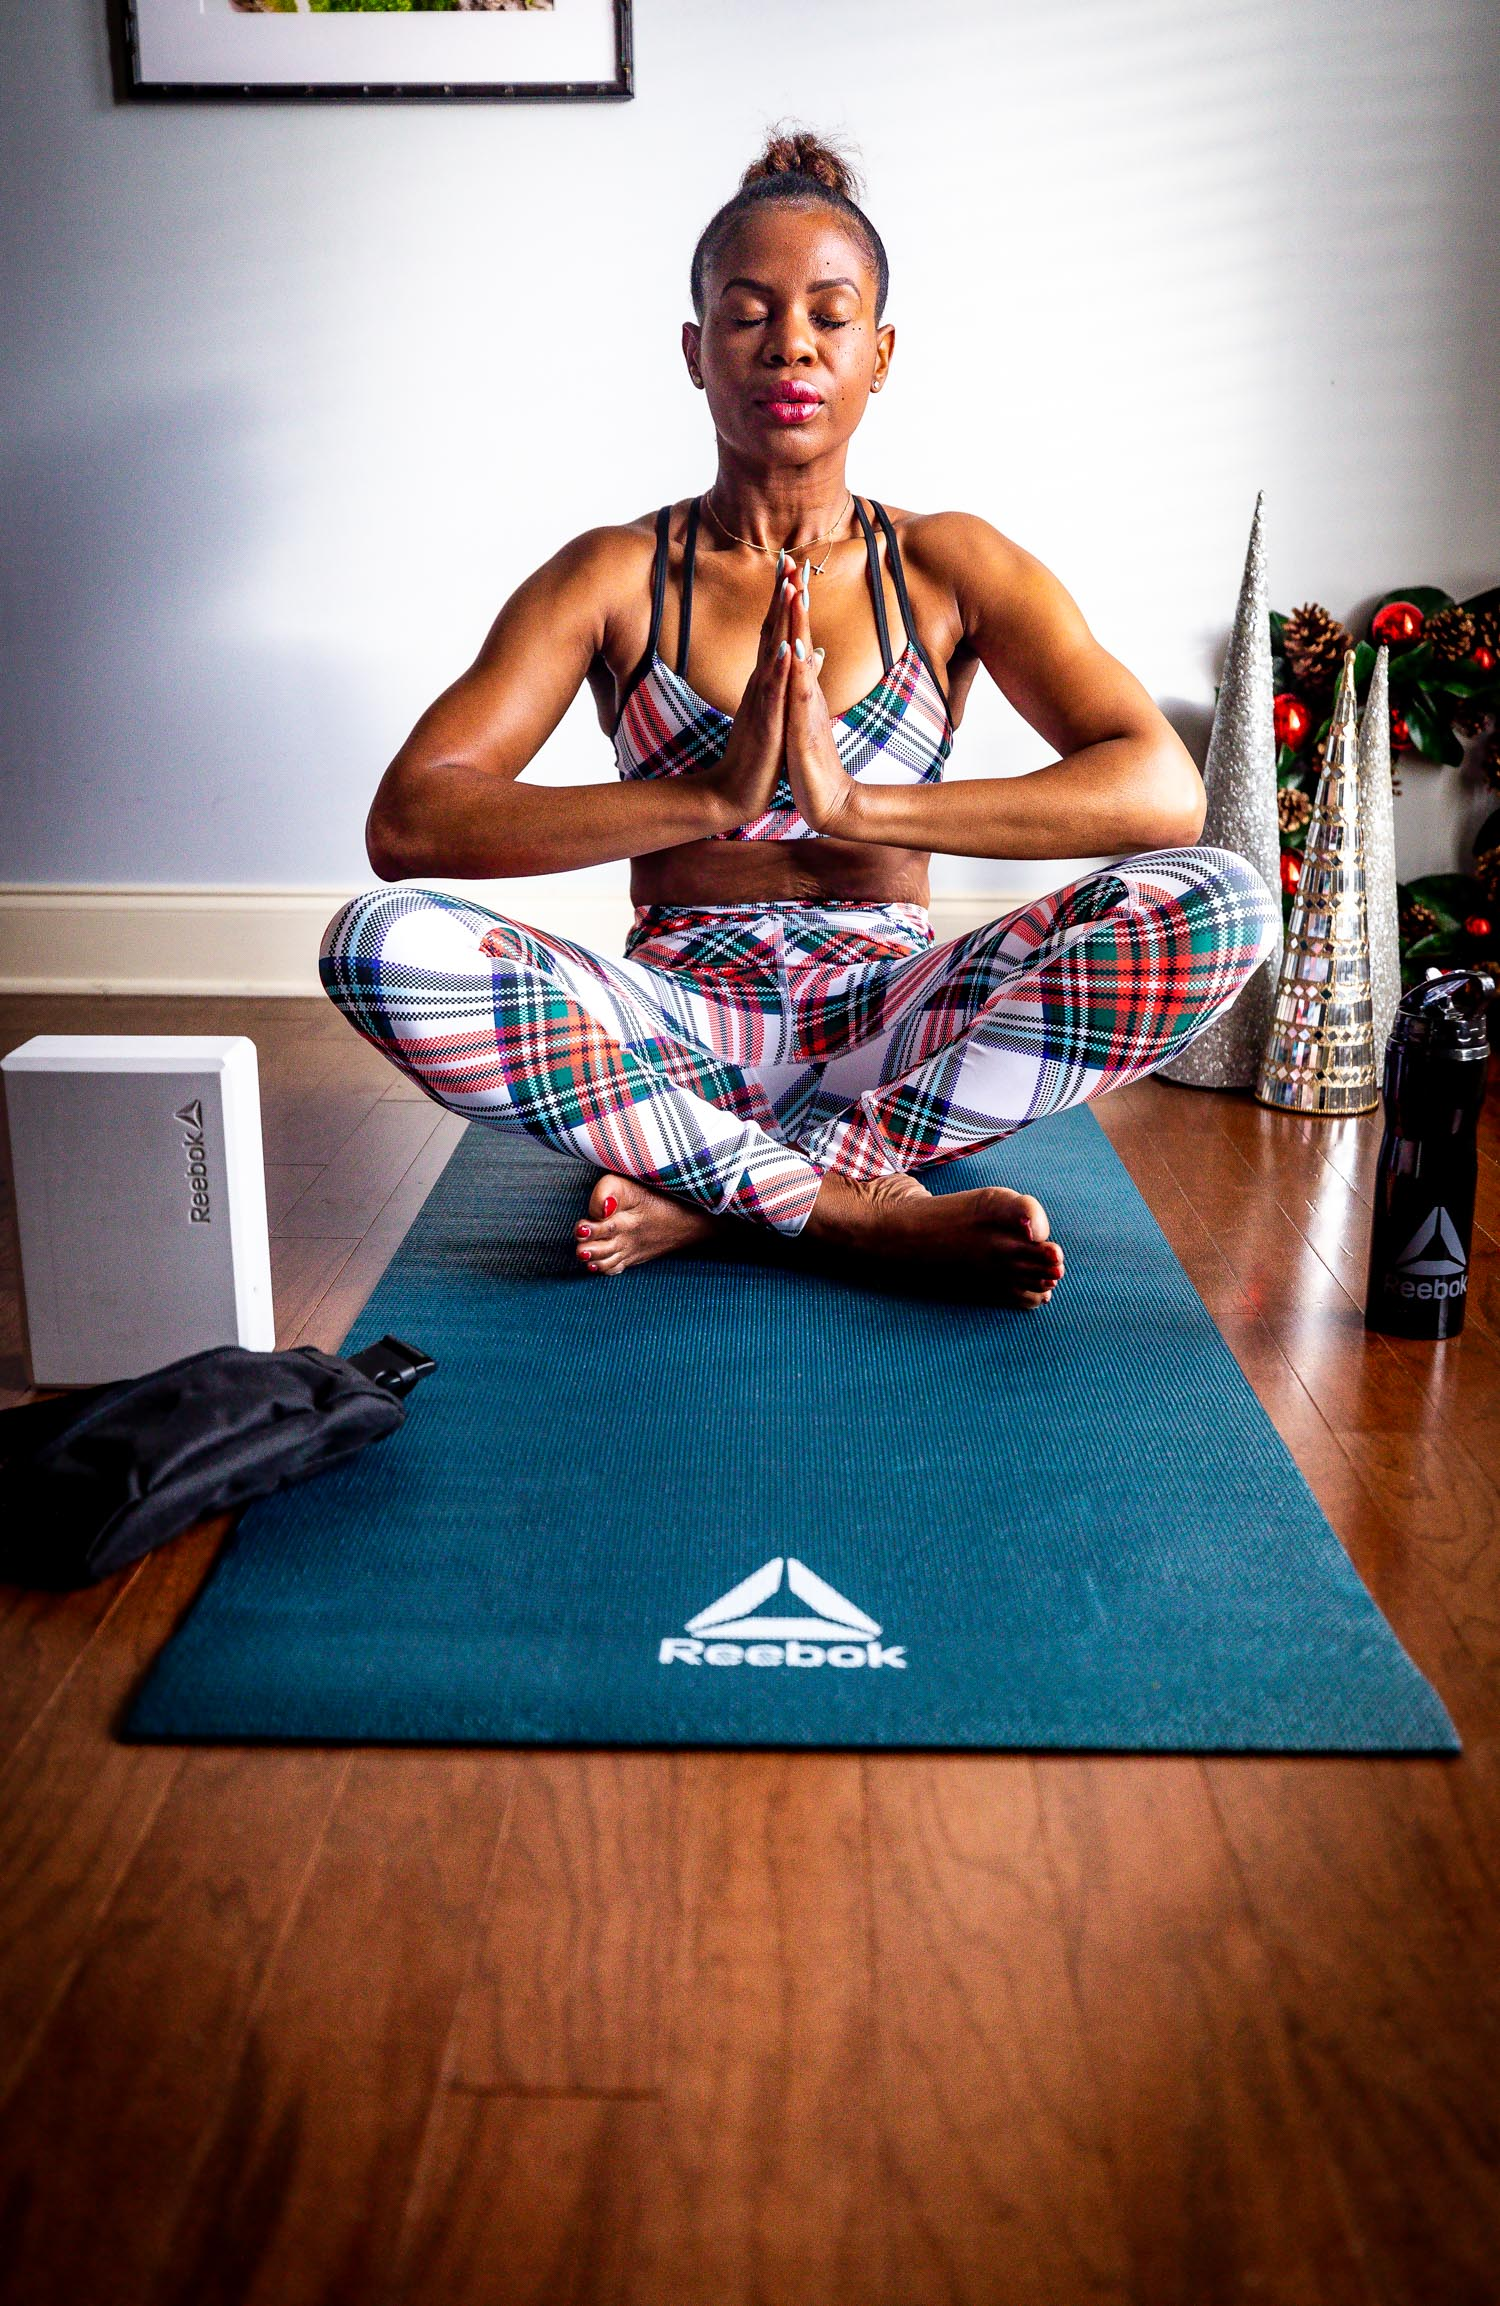 Atlanta Lifestyle Blogger Monica Awe Etuk Wearing Reebok Plaid Leggings And Sports Bra Reebok Yoga Mat Yoga Block And Reebok Water Bottle For The Holiday 15 Awed By Monica